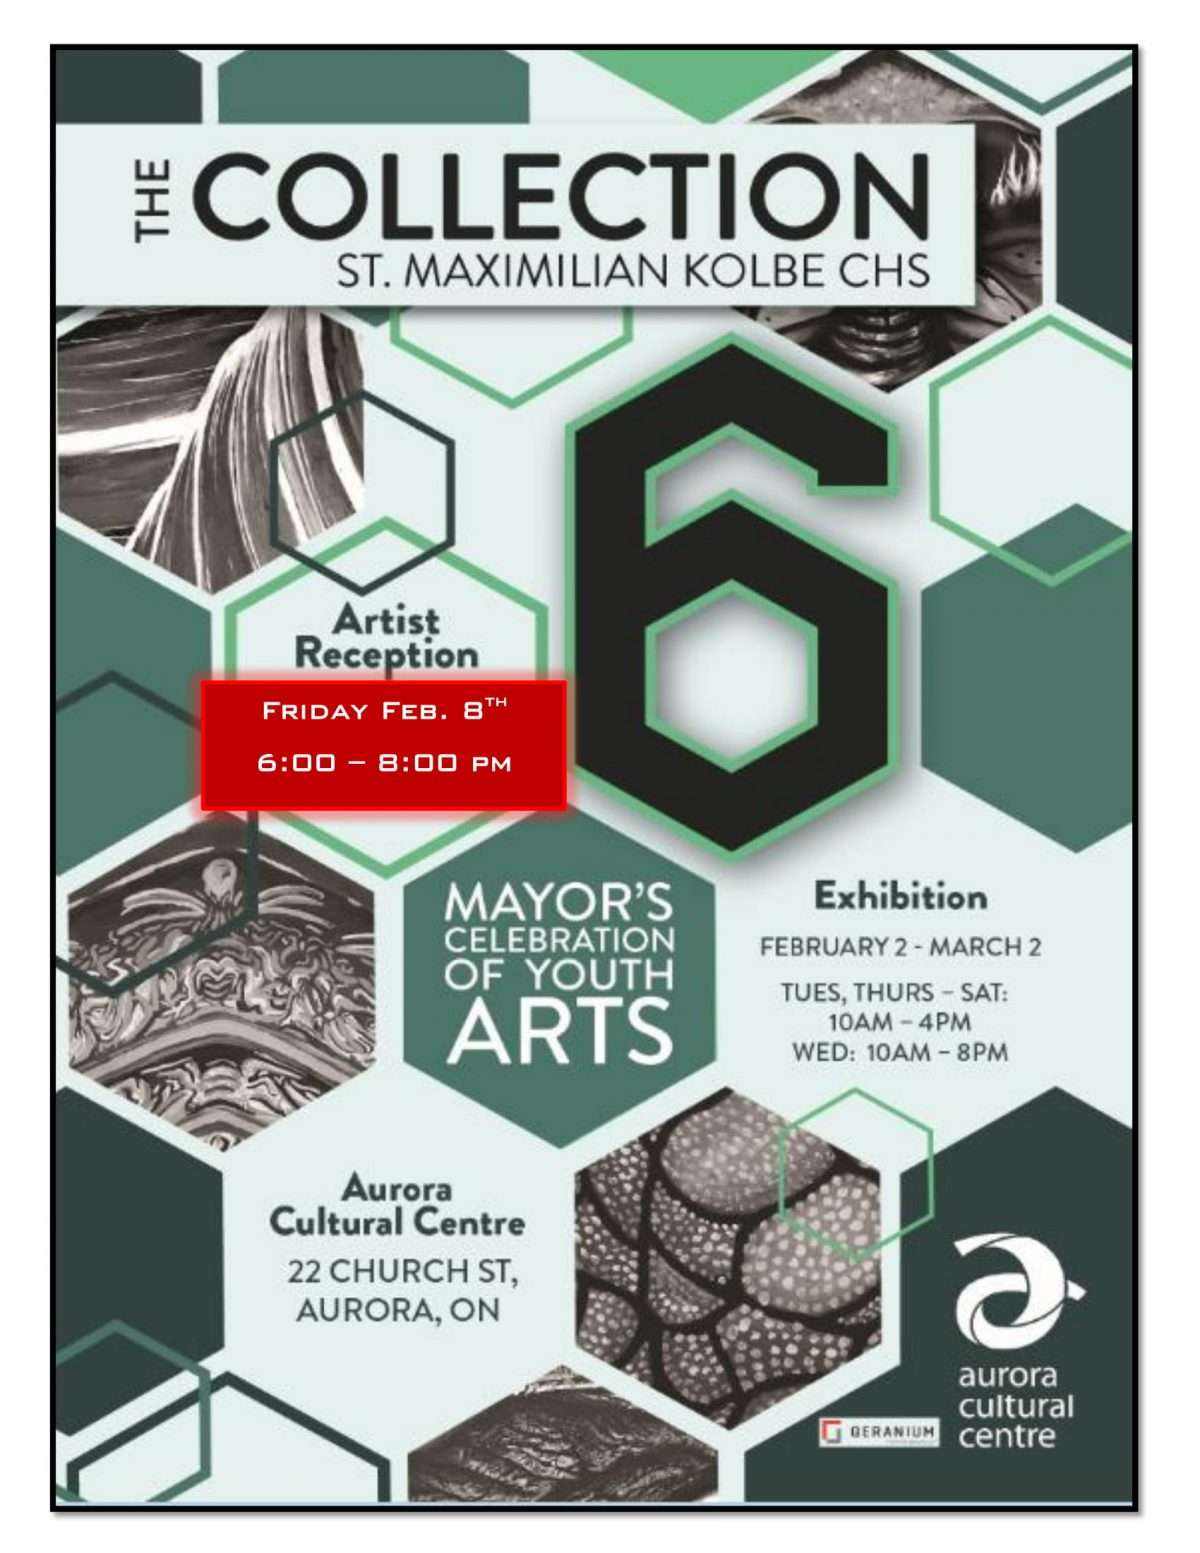 SMK Art Show – The Collection